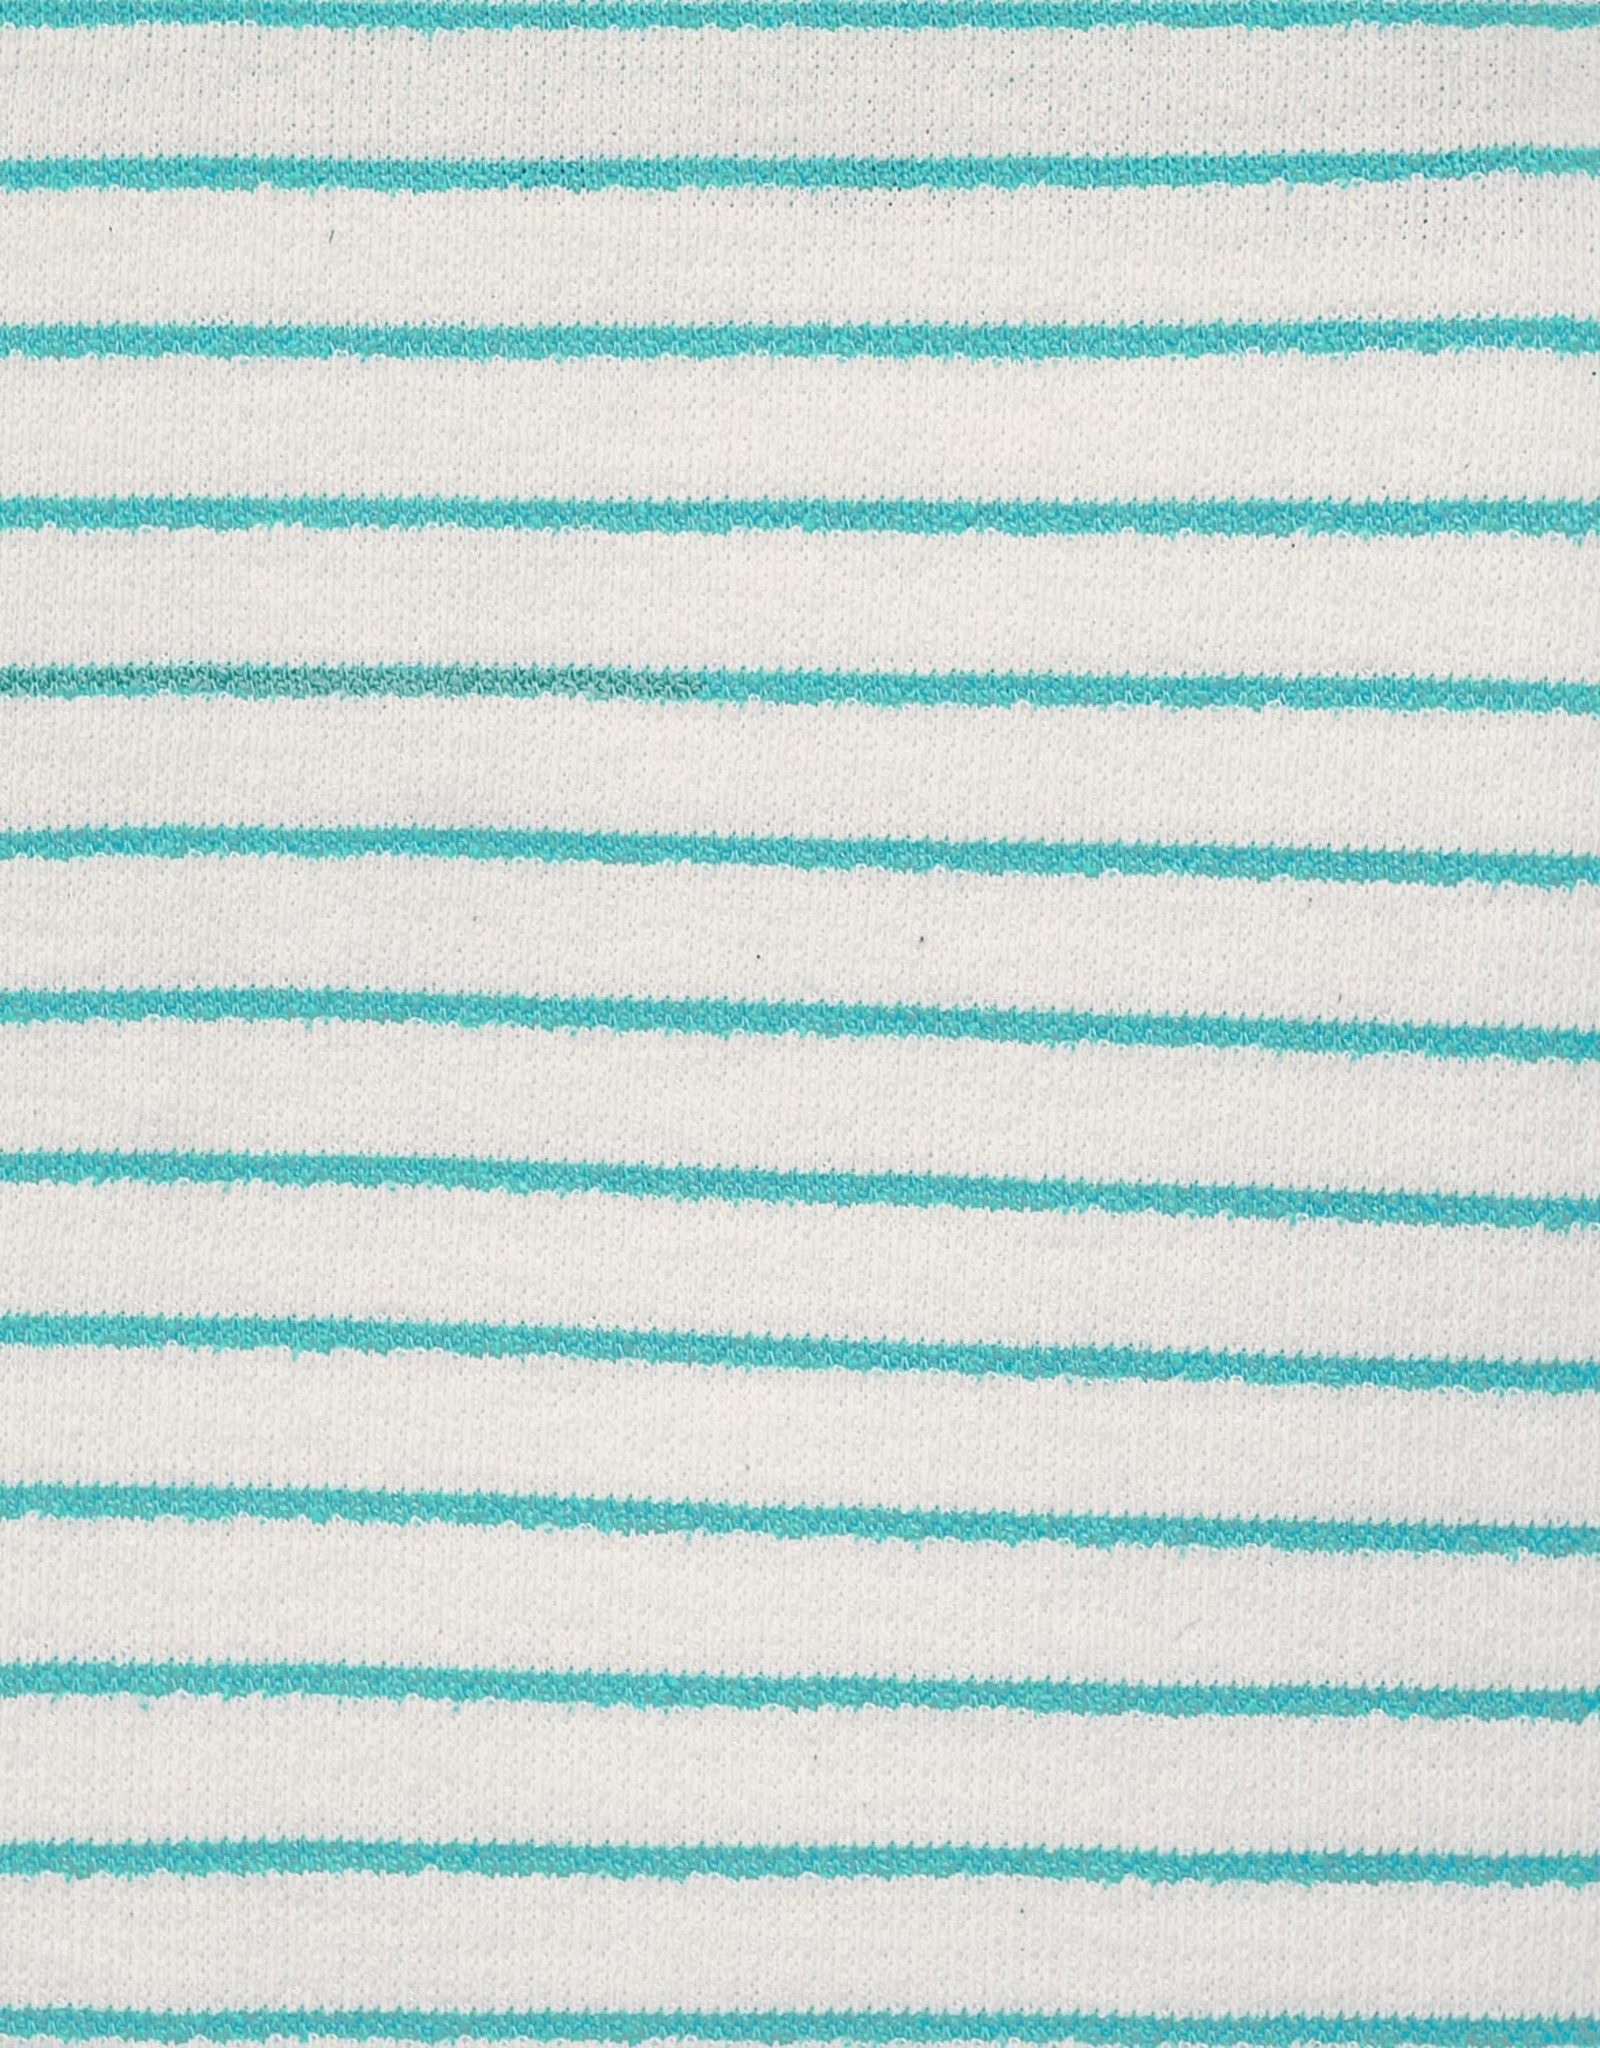 Katia Sweat towel stripes aqua